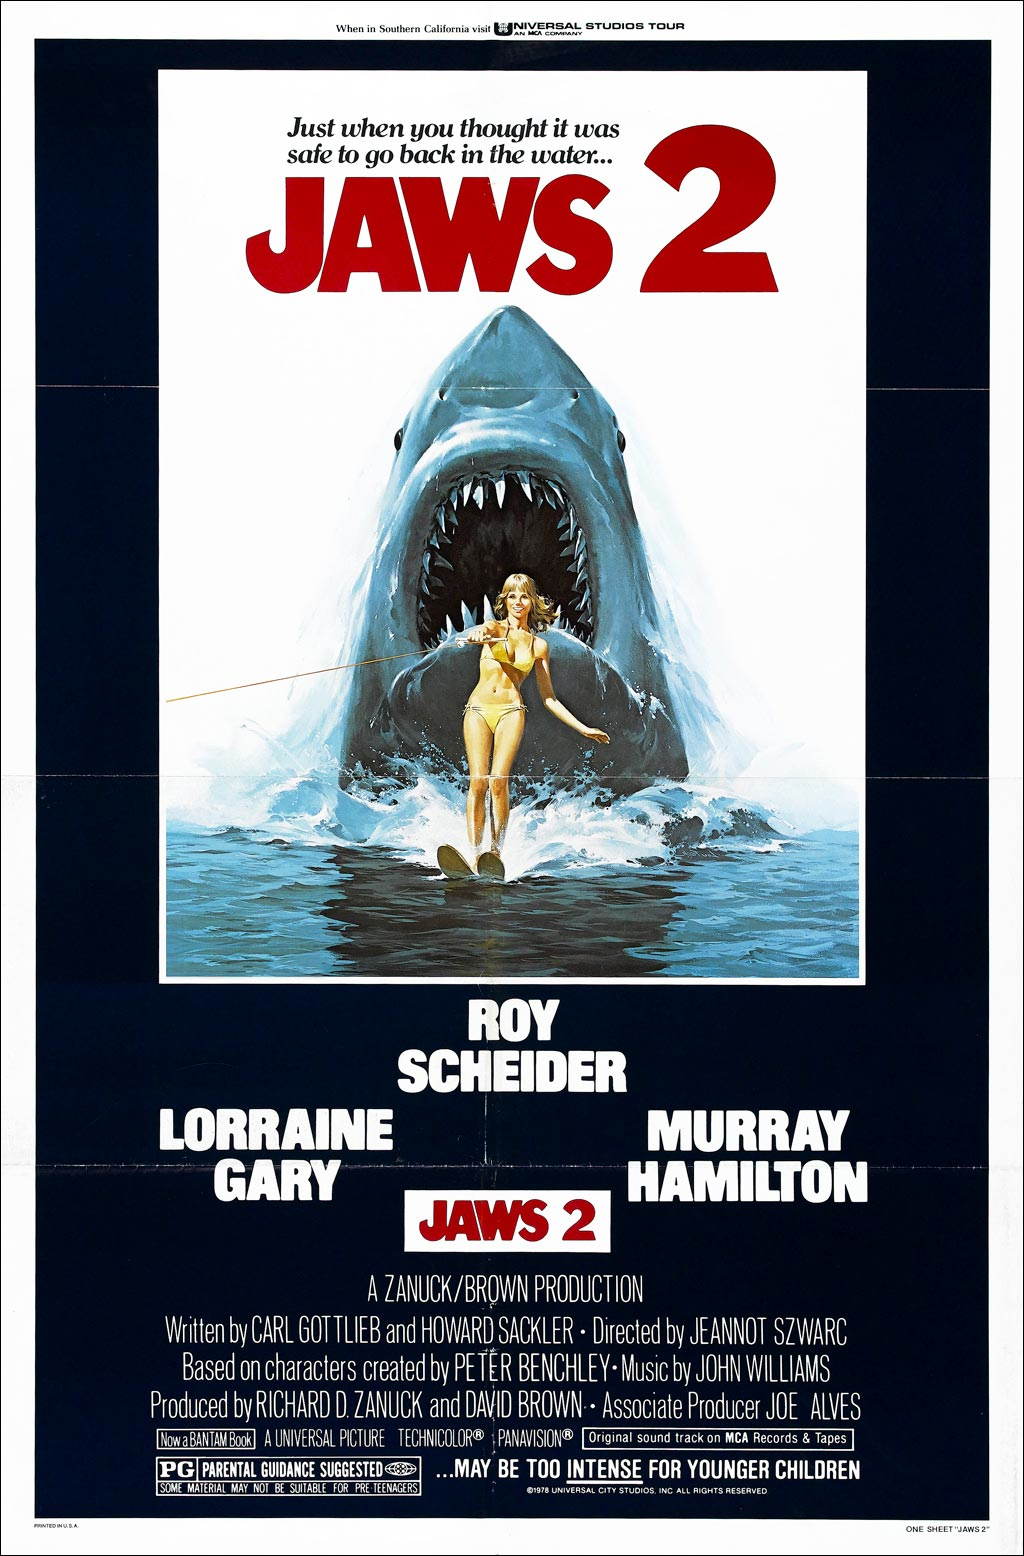 michael vs thomas jaws 2